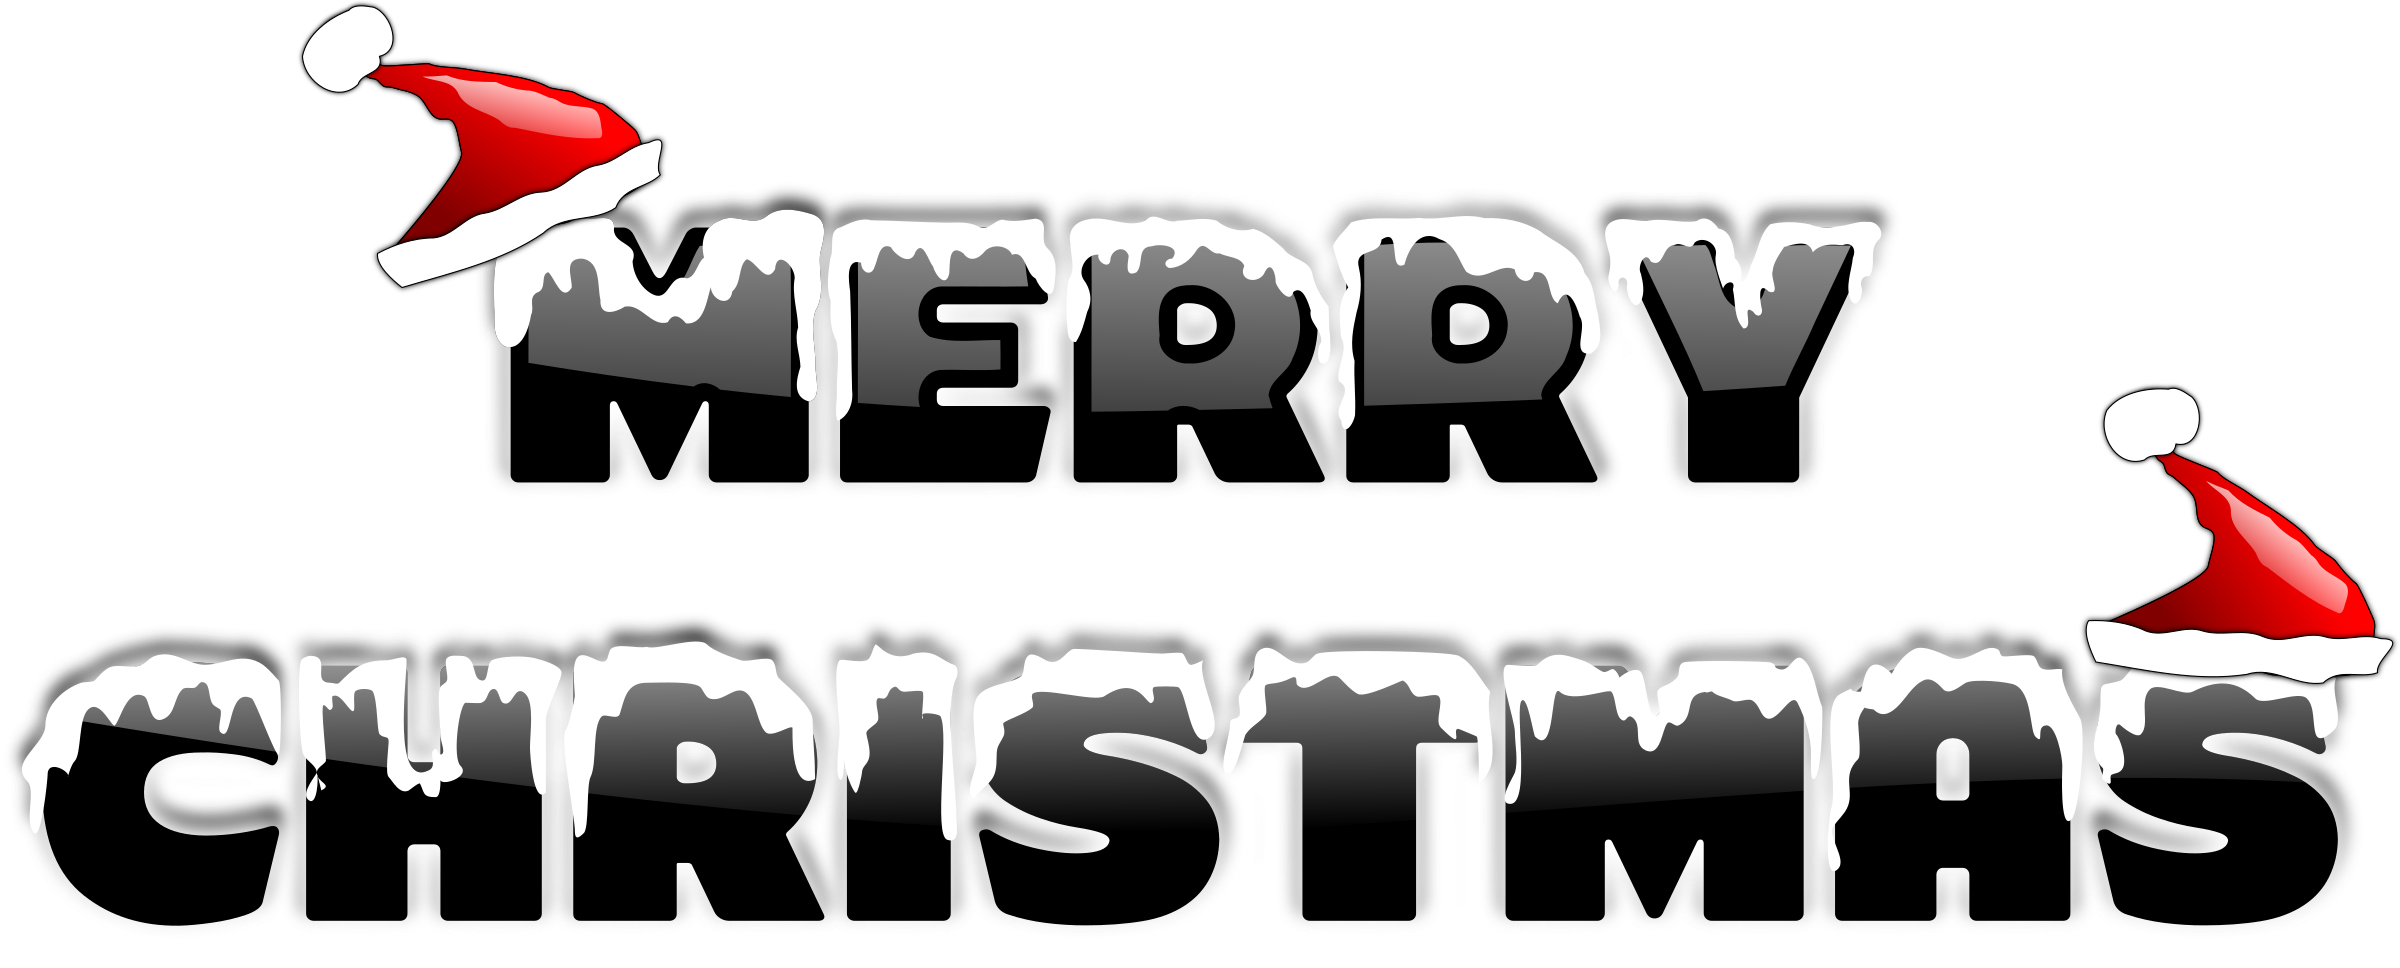 Merry christmas big image. Words clipart team